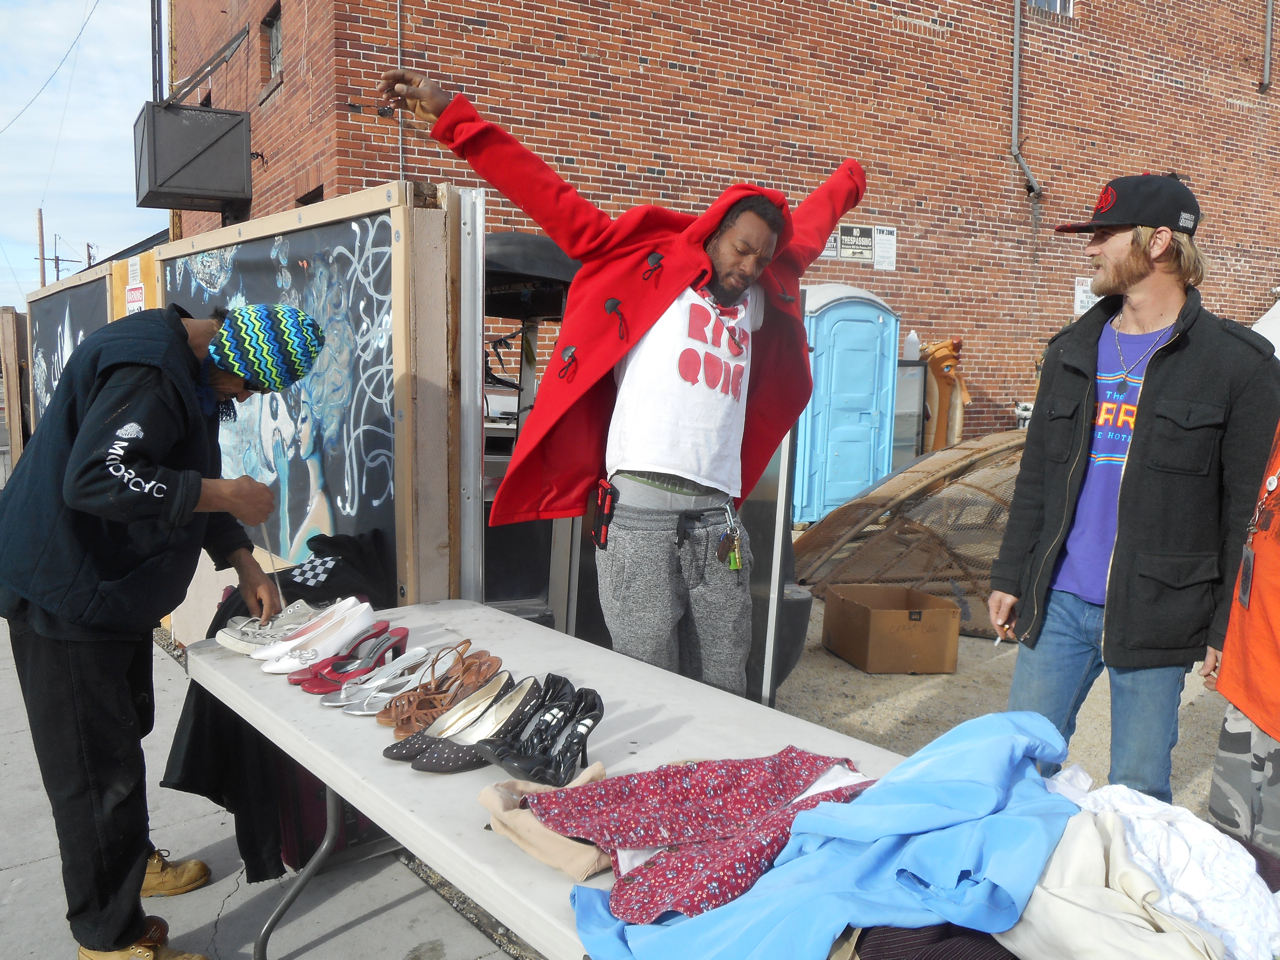 Shinobi (in red coat) who used to be homeless in Los Angeles, now helps the homeless in Reno through his involvement with the Morris Burner Hotel. Listen to his audio interview below: